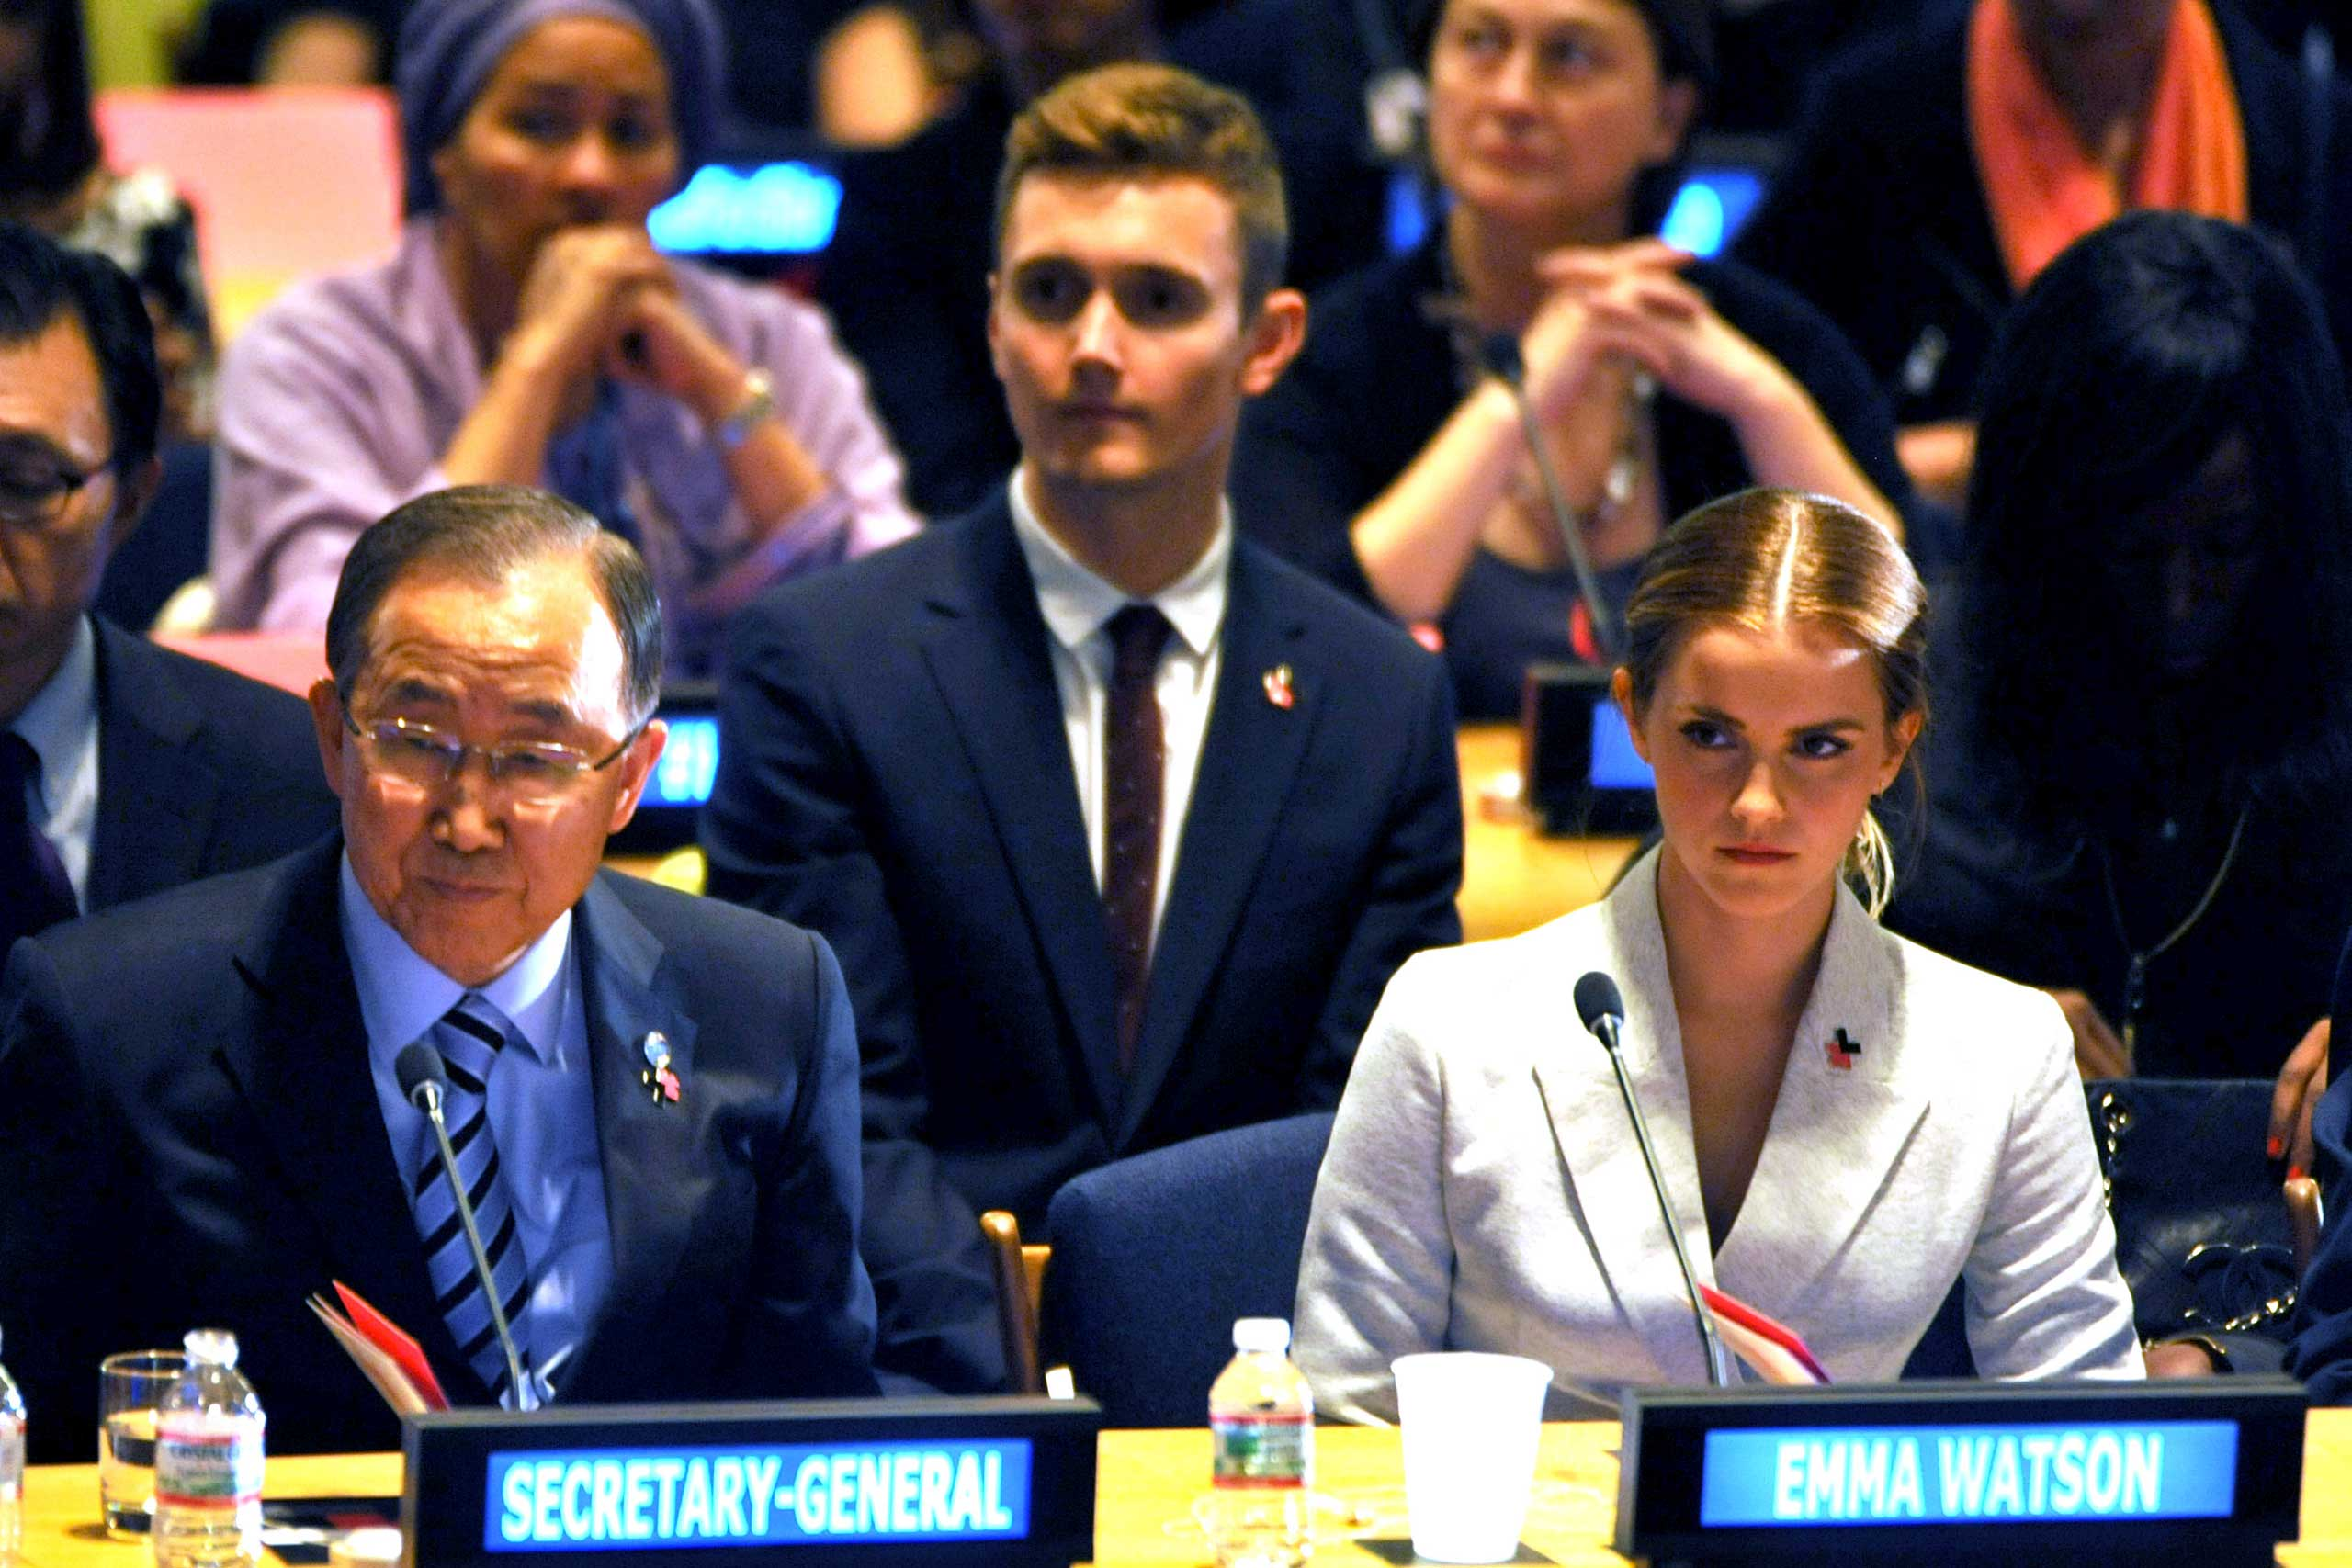 Emma Watson and Ban Ki-Moon attend the launch of the HeForShe Campaign at the United Nations in September of 2014 in New York.